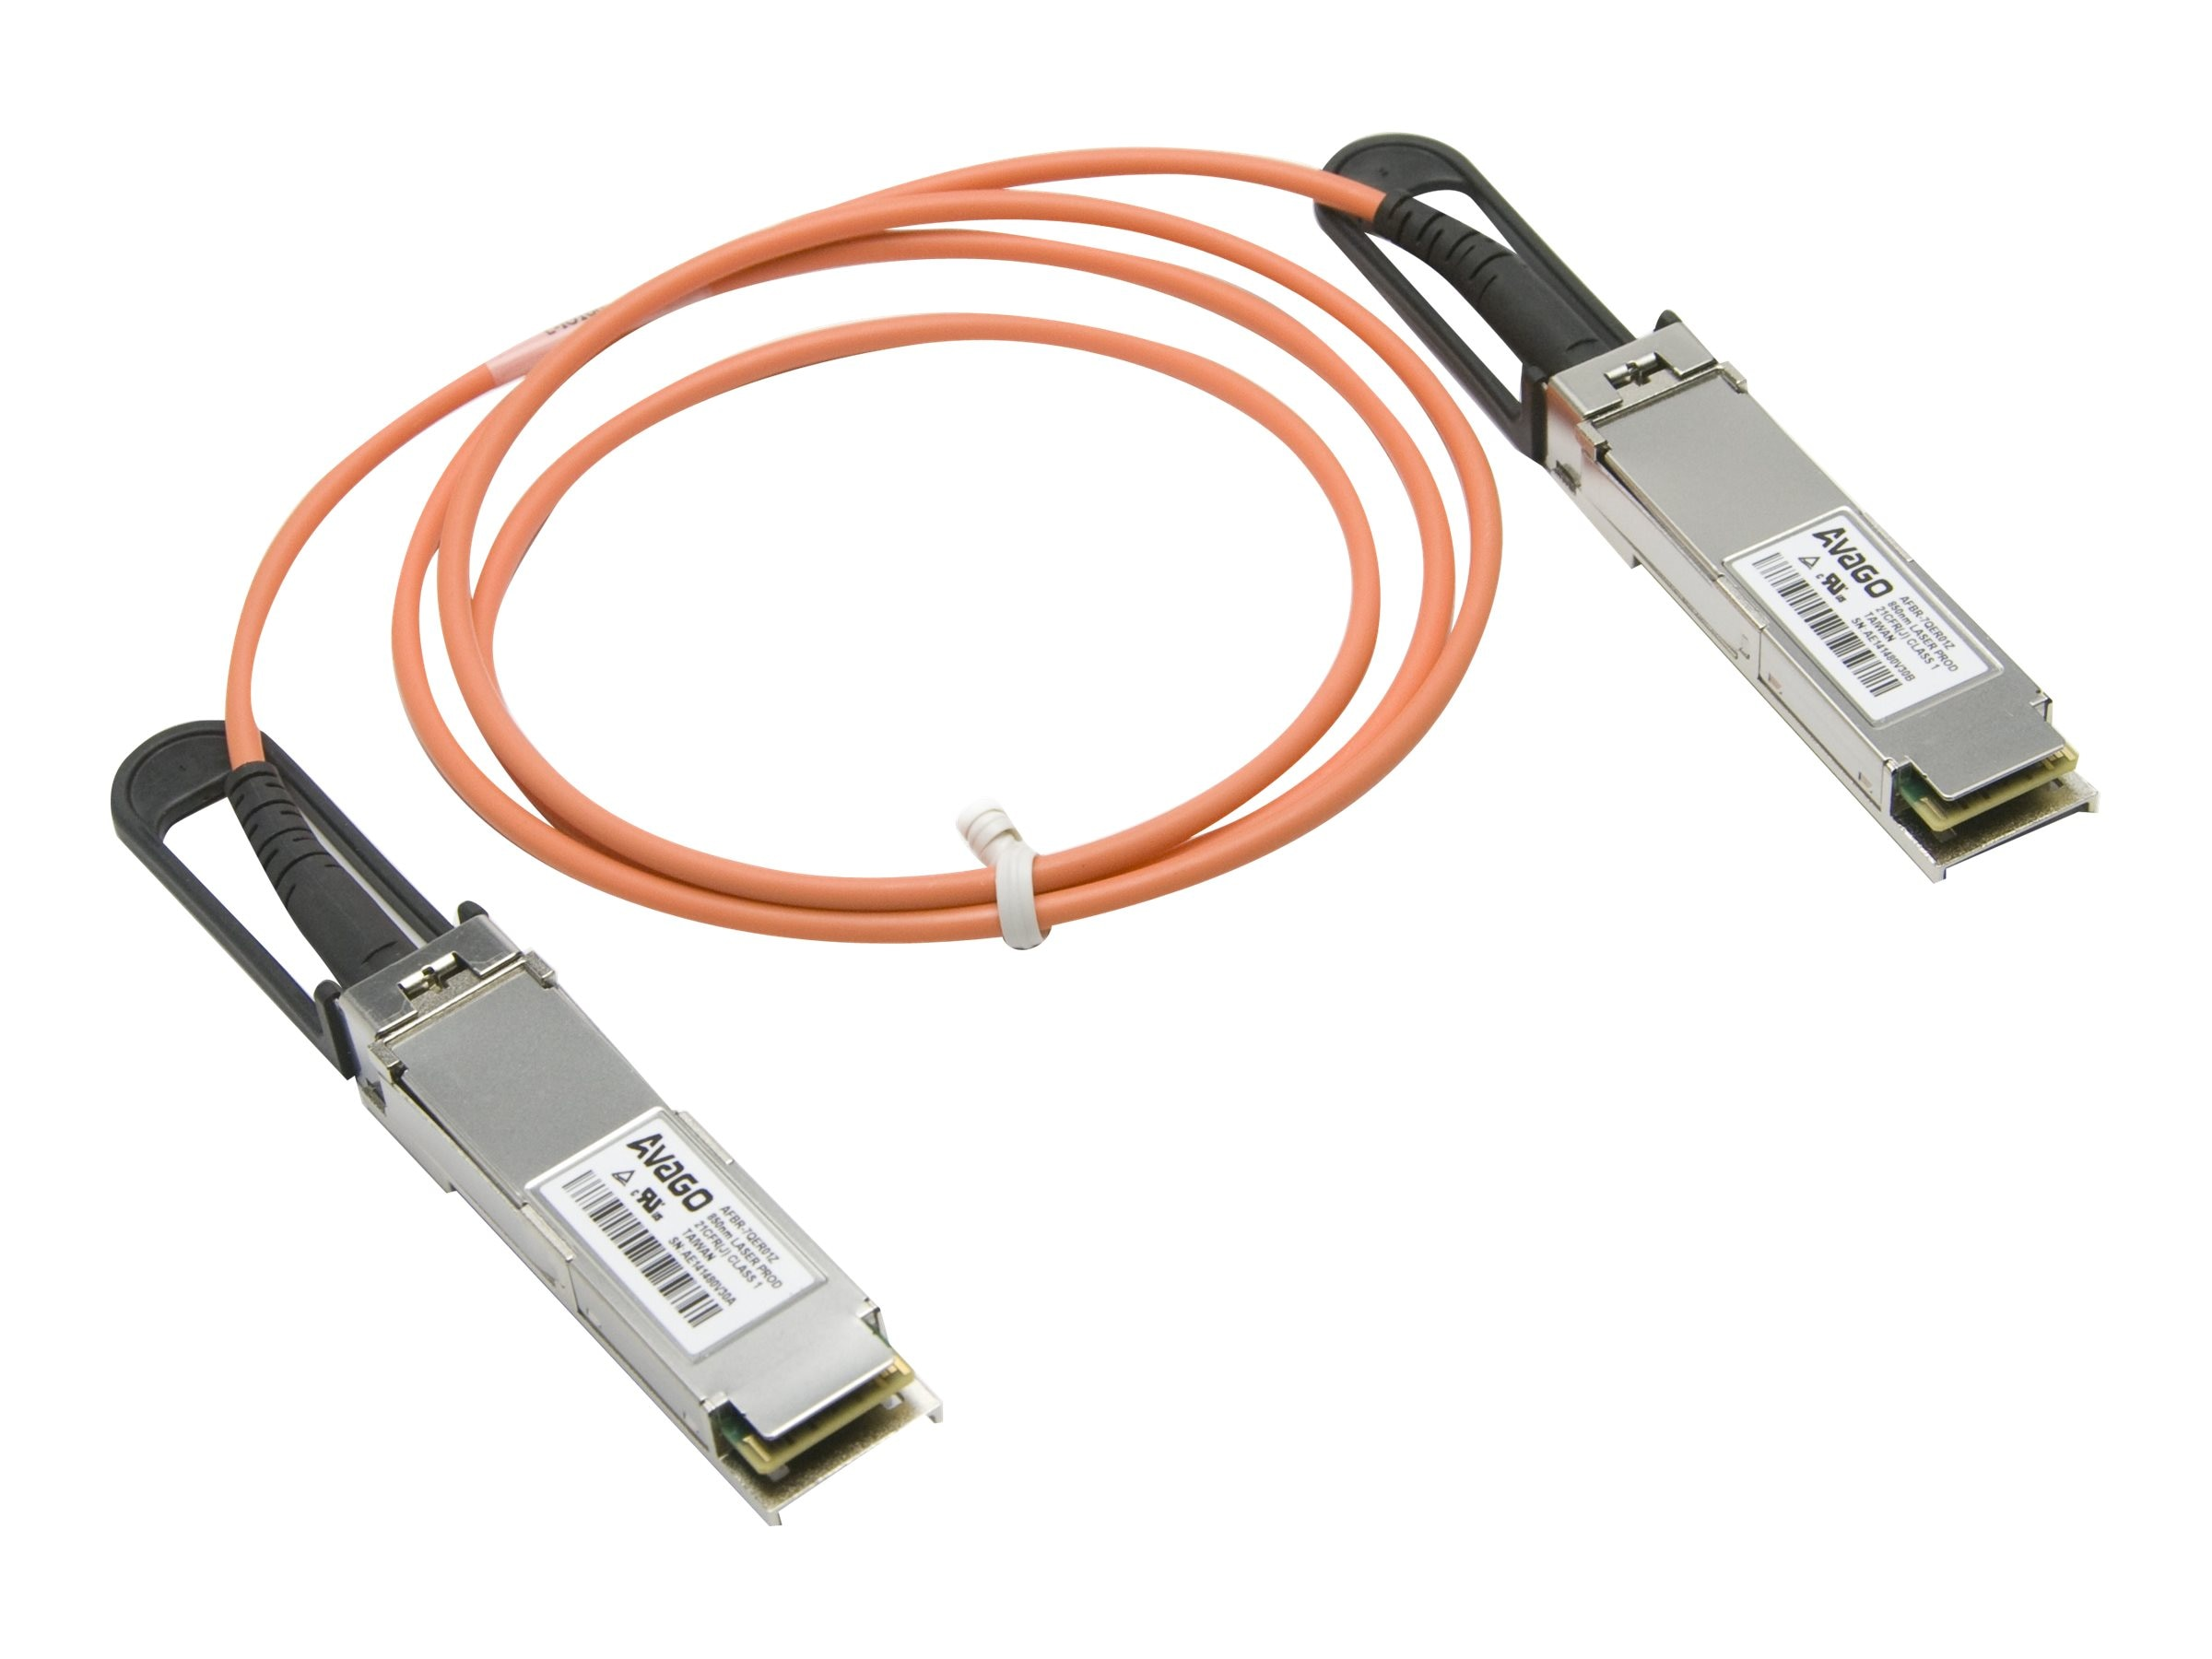 Supermicro 40G QSFP+ Active Optical Cable, 5m